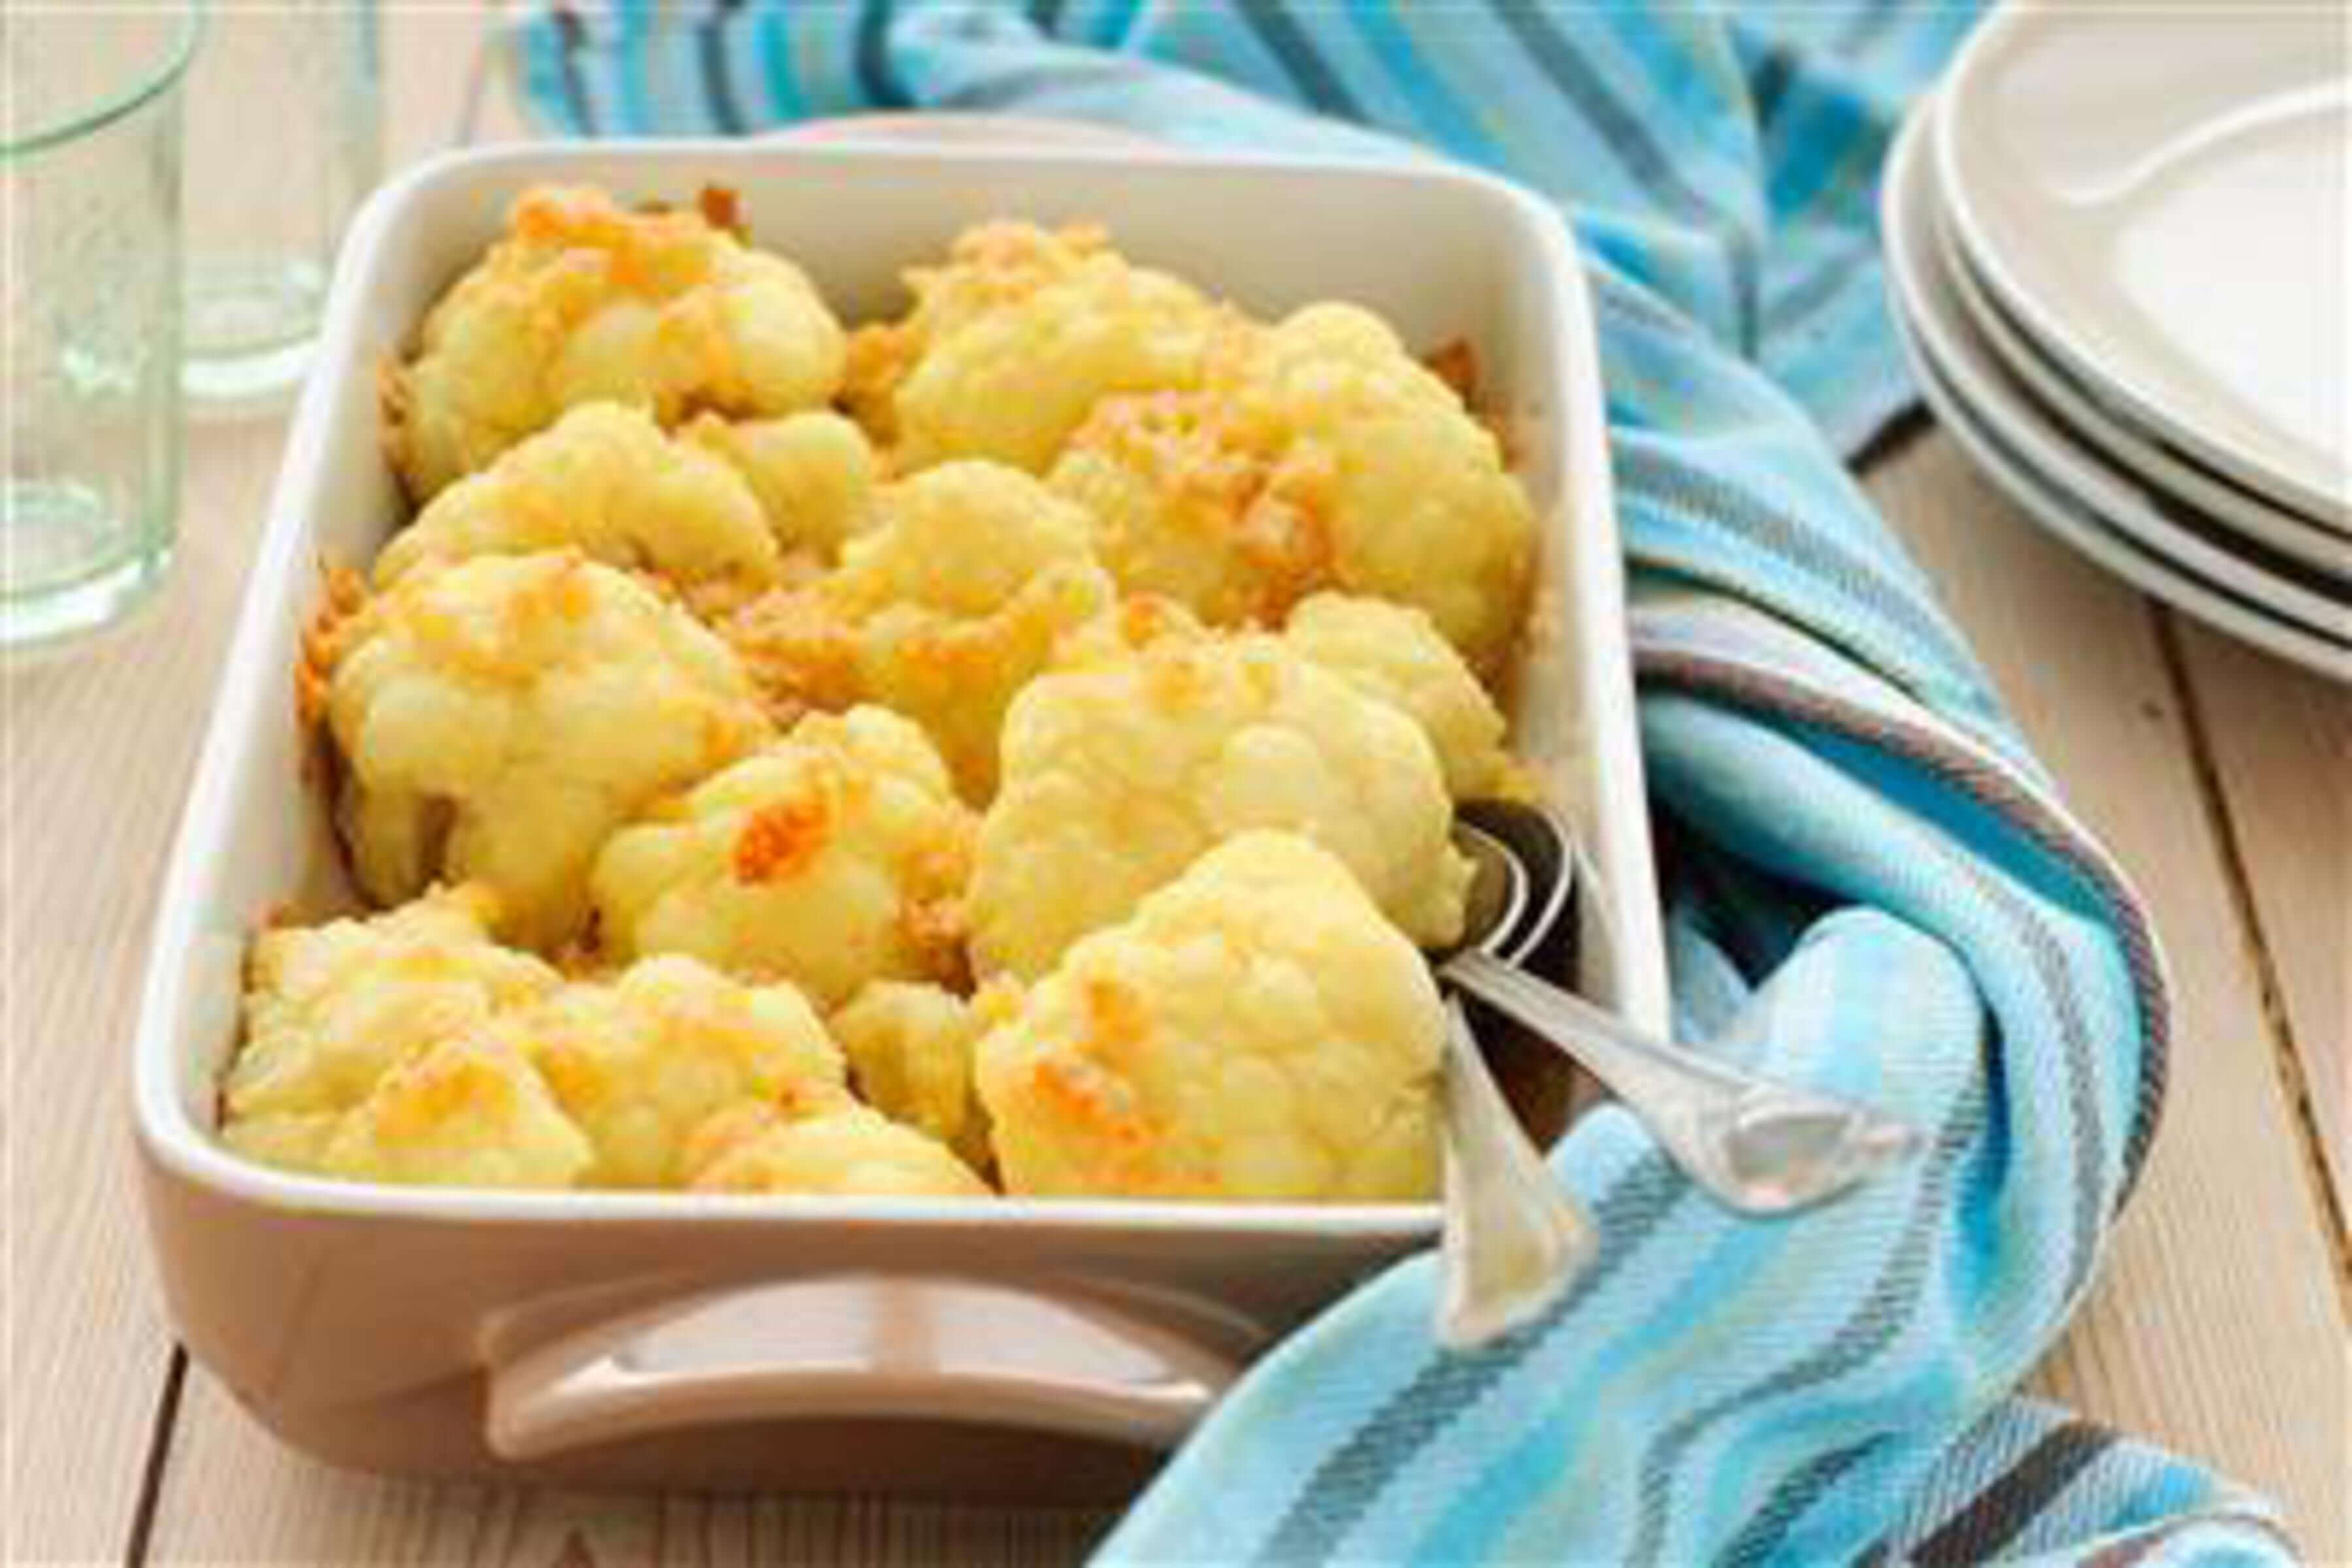 Oven-Roasted Cauliflower With Garlic, Olive Oil And Lemon Juice Recipe | RecipeSavants.com